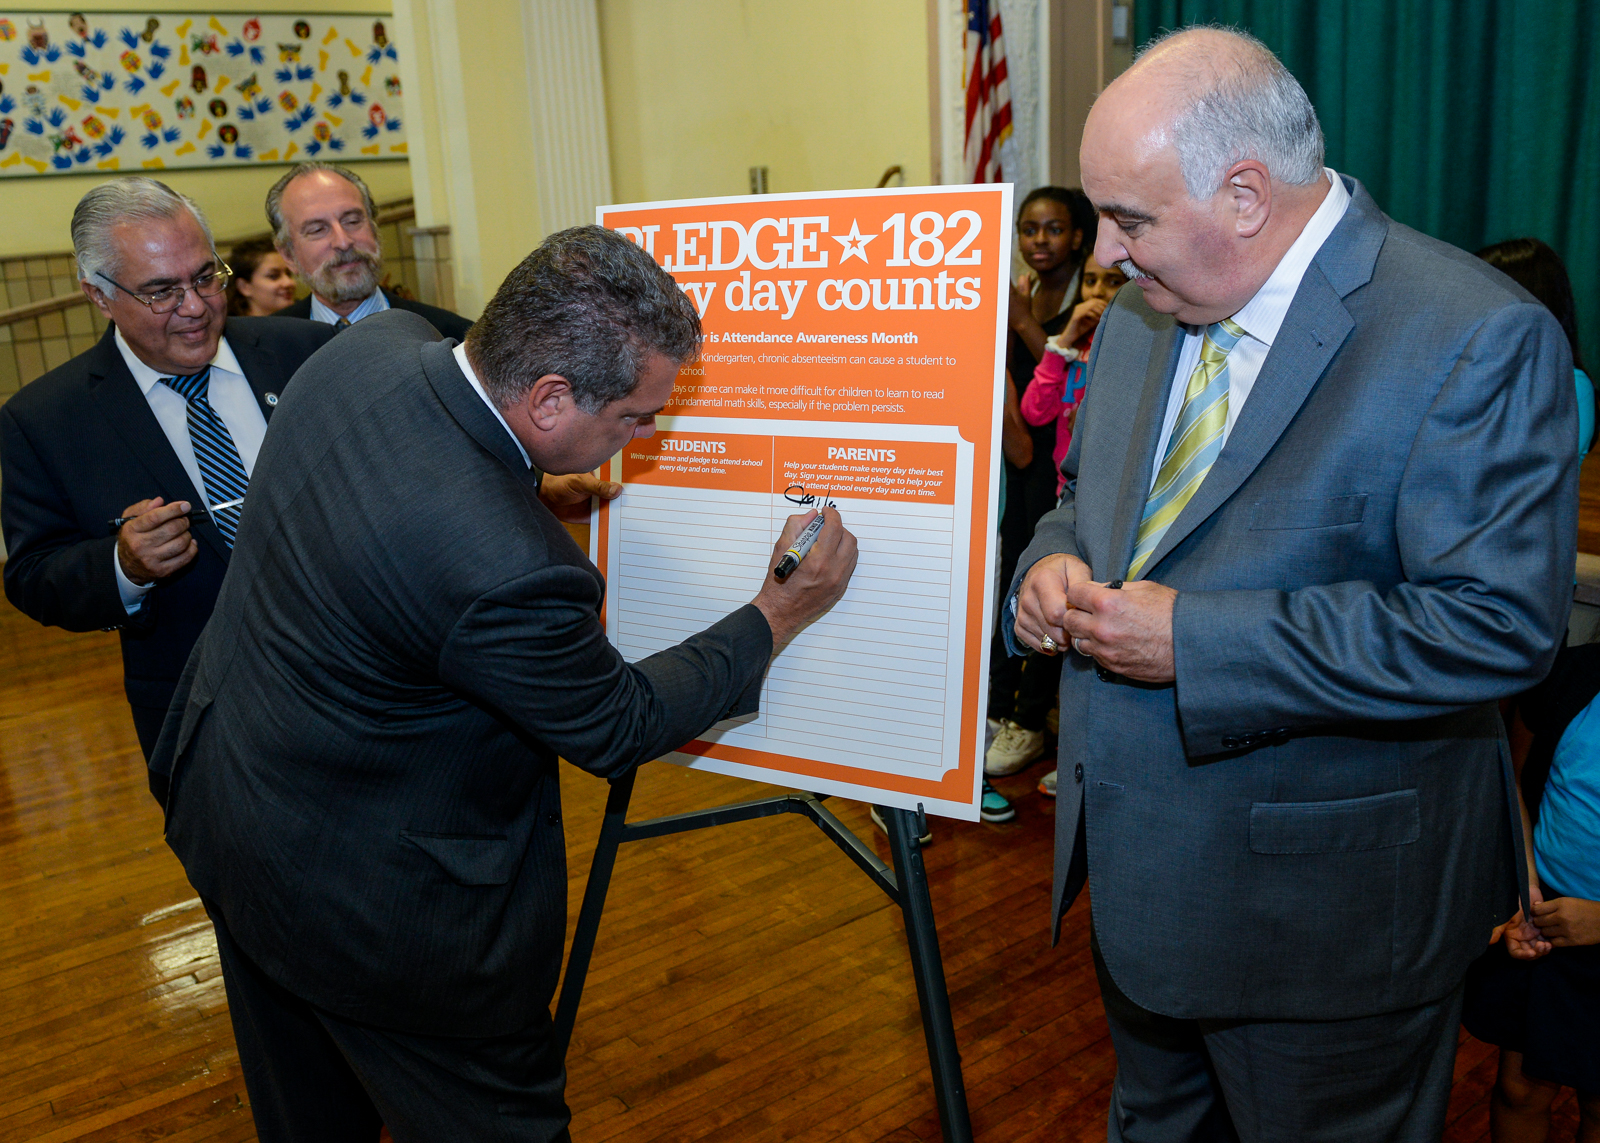 Mayor Spano Signs Pledge 182